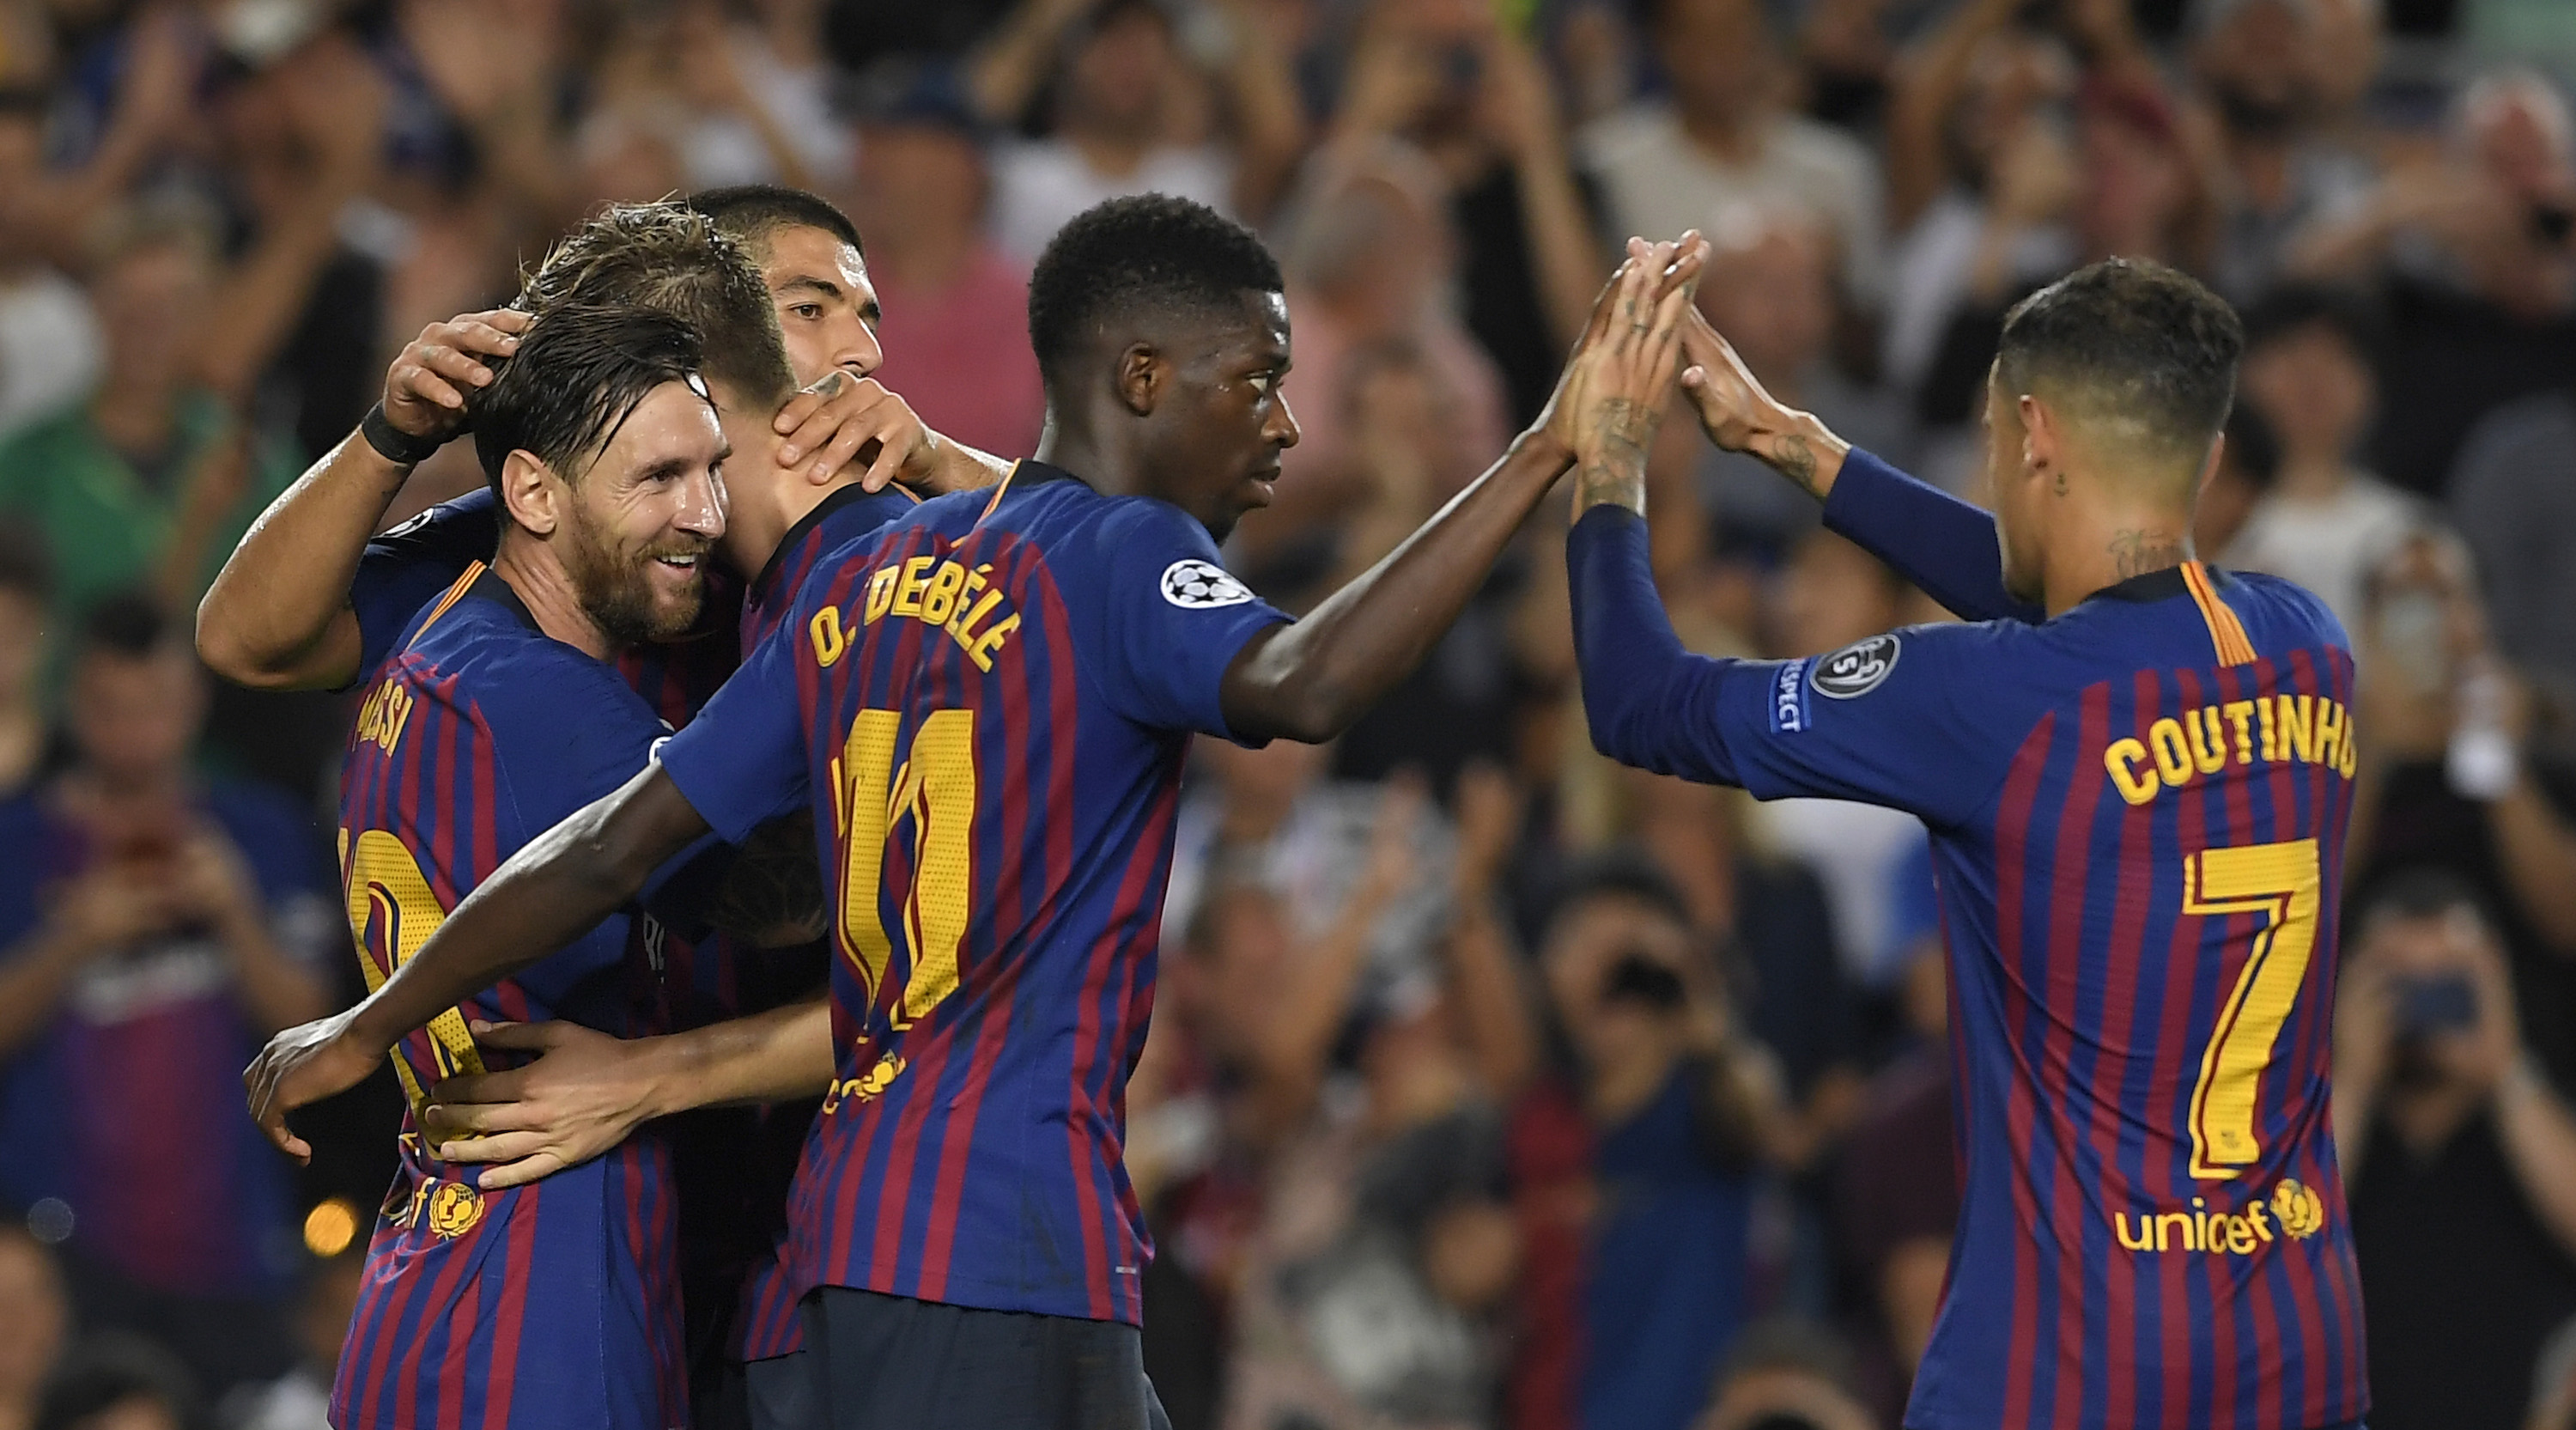 Barcelona's Argentinian forward Lionel Messi (L) celebrates with Barcelona's French forward Ousmane Dembele (C) and Barcelona's Brazilian midfielder Philippe Coutinho after scoring during the UEFA Champions' League group B football match FC Barcelona against PSV Eindhoven at the Camp Nou stadium in Barcelona on September 18, 2018. (Photo by LLUIS GENE / AFP) (Photo credit should read LLUIS GENE/AFP/Getty Images)